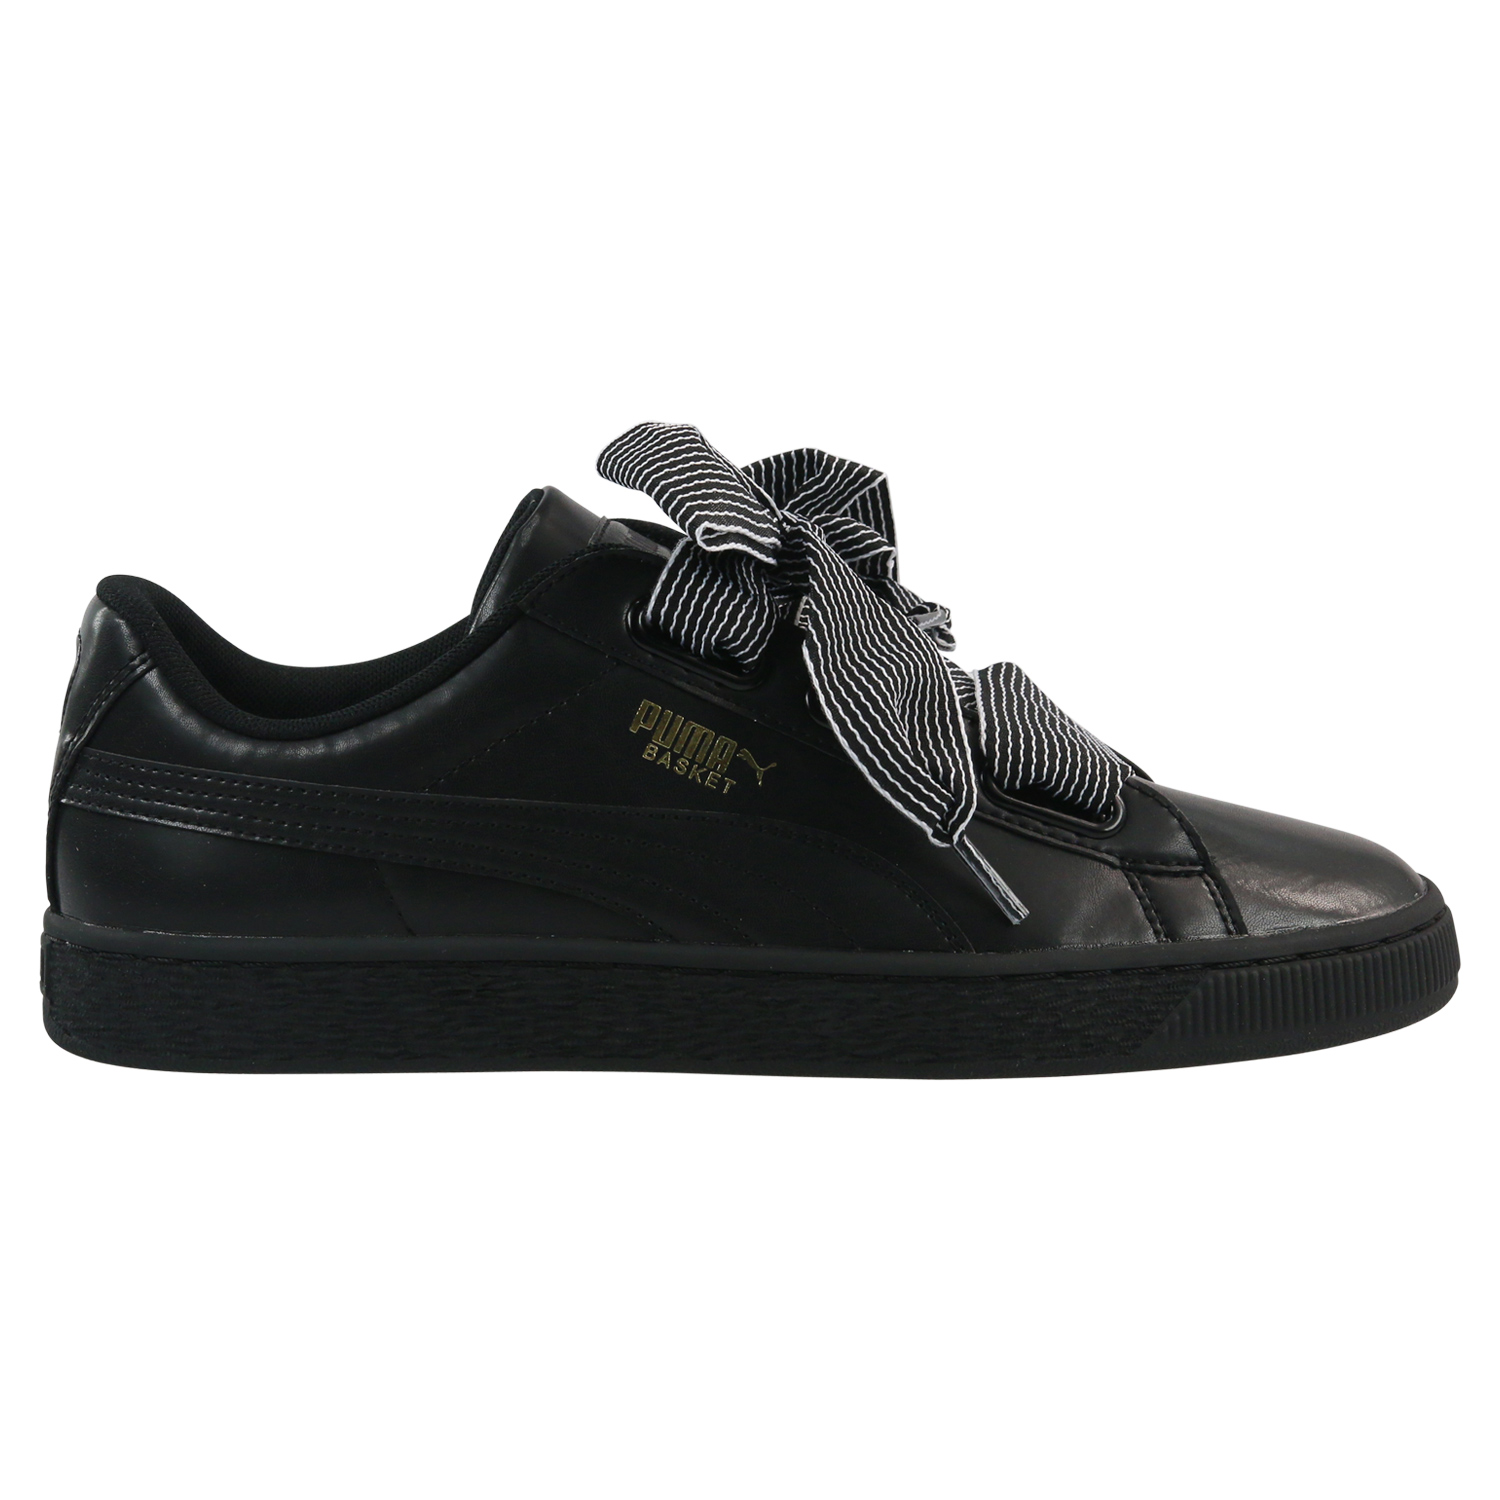 puma basket heart patent de glam jr sneaker schuhe schleife damen m dchen ebay. Black Bedroom Furniture Sets. Home Design Ideas